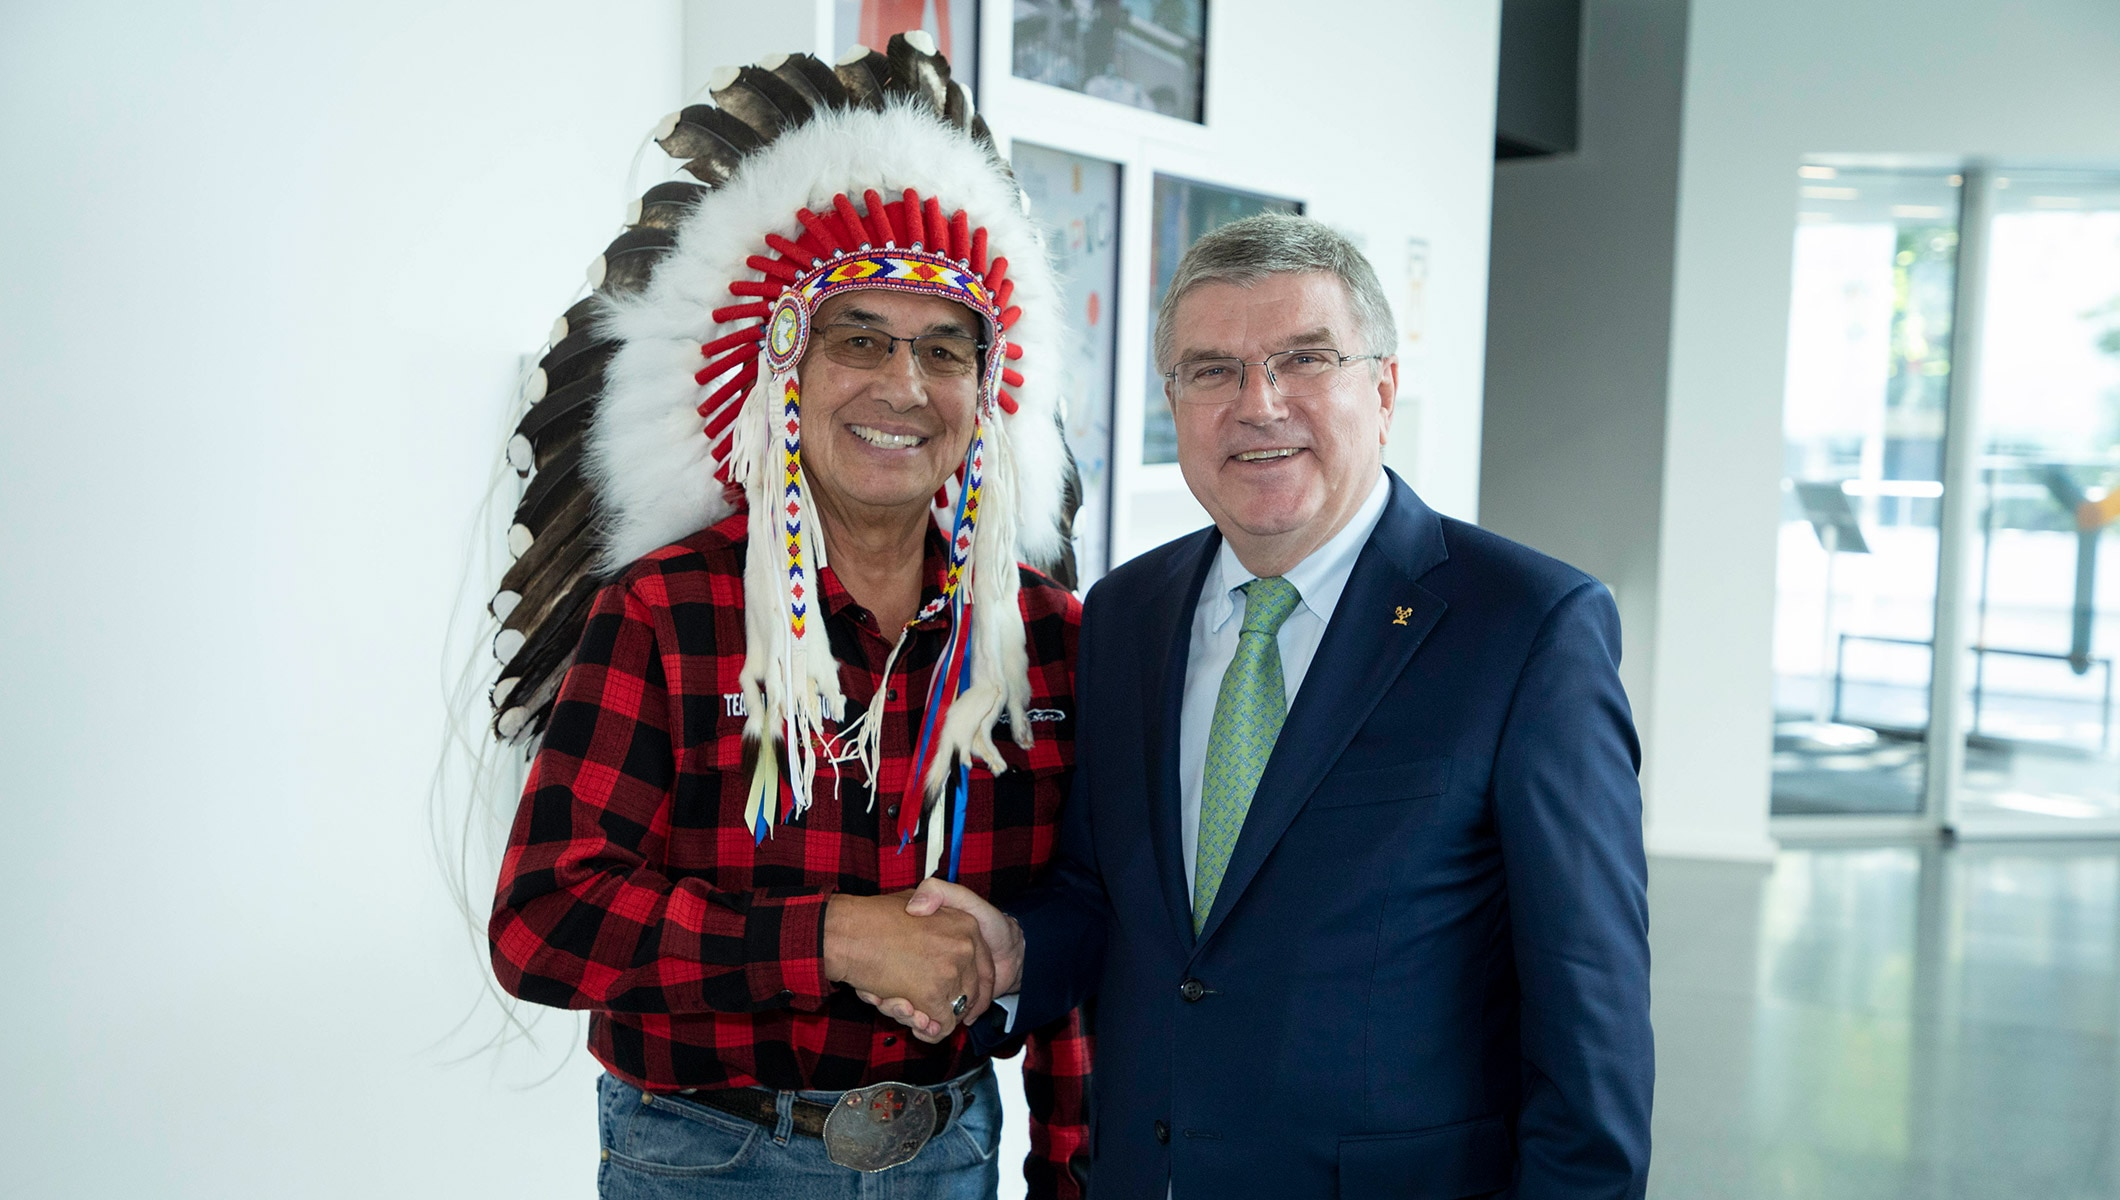 Thomas BACH, IOC President meets with Honorary Chief Littlechild in Lausanne, 2018